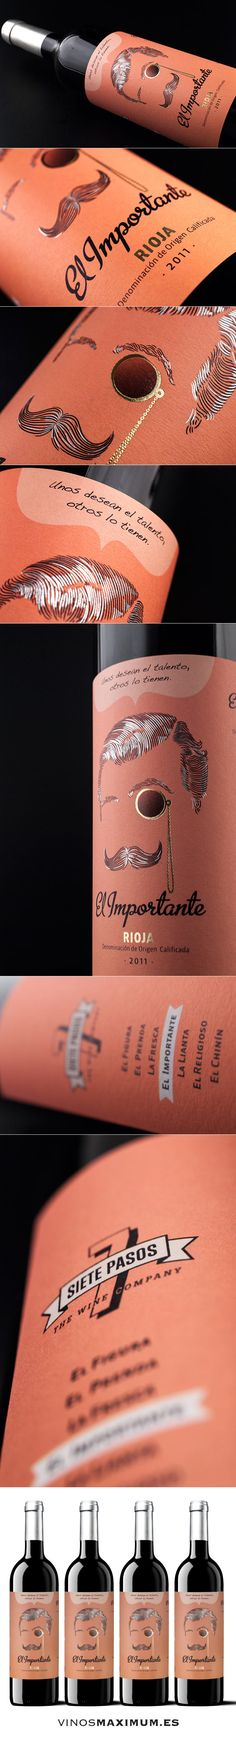 Siete pasos - El Importante - D.O.C. Rioja. Tempranillo 100%. Tinto Crianza. Spain. more awesome #illustrated #wine #packaging PD